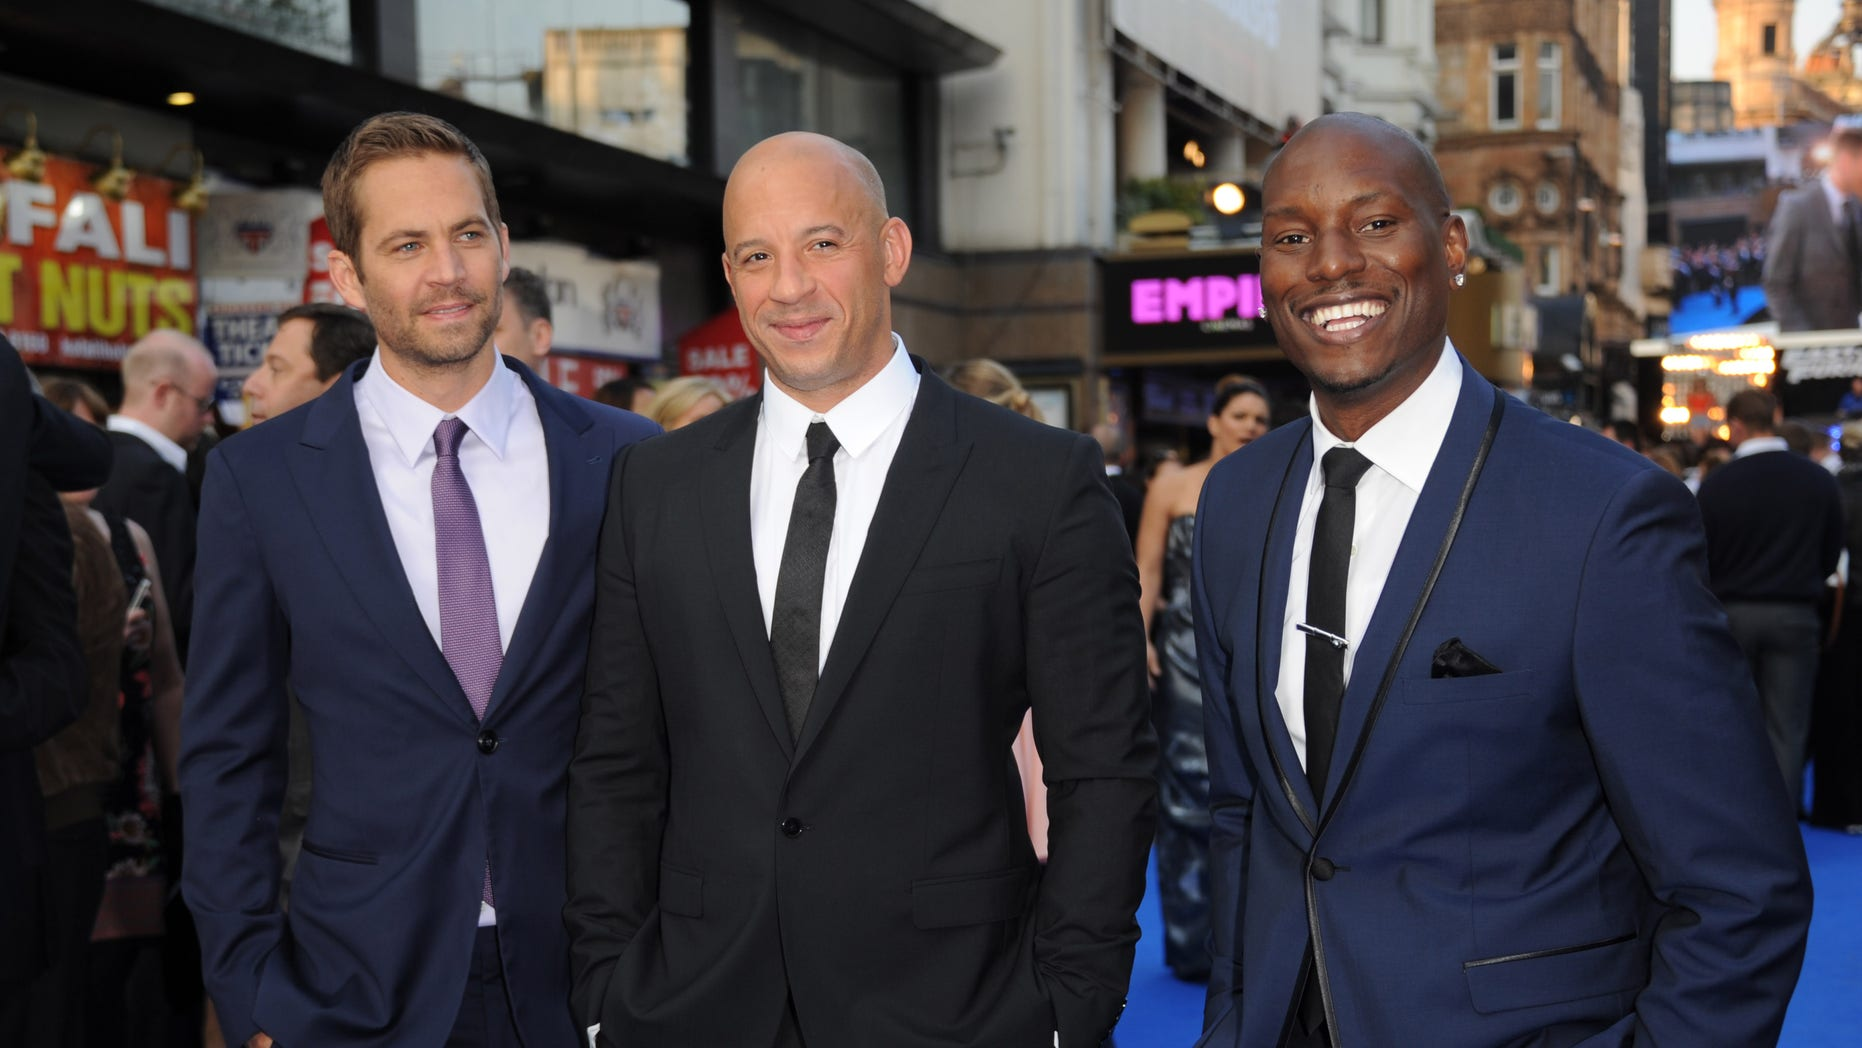 """LONDON, ENGLAND - MAY 07:  Actors Paul Walker, Vin Diesel and Tyrese Gibson attend the """"Fast & Furious 6"""" World Premiere at The Empire, Leicester Square on May 7, 2013 in London, England.  (Photo by Stuart C. Wilson/Getty Images for Universal Pictures)"""